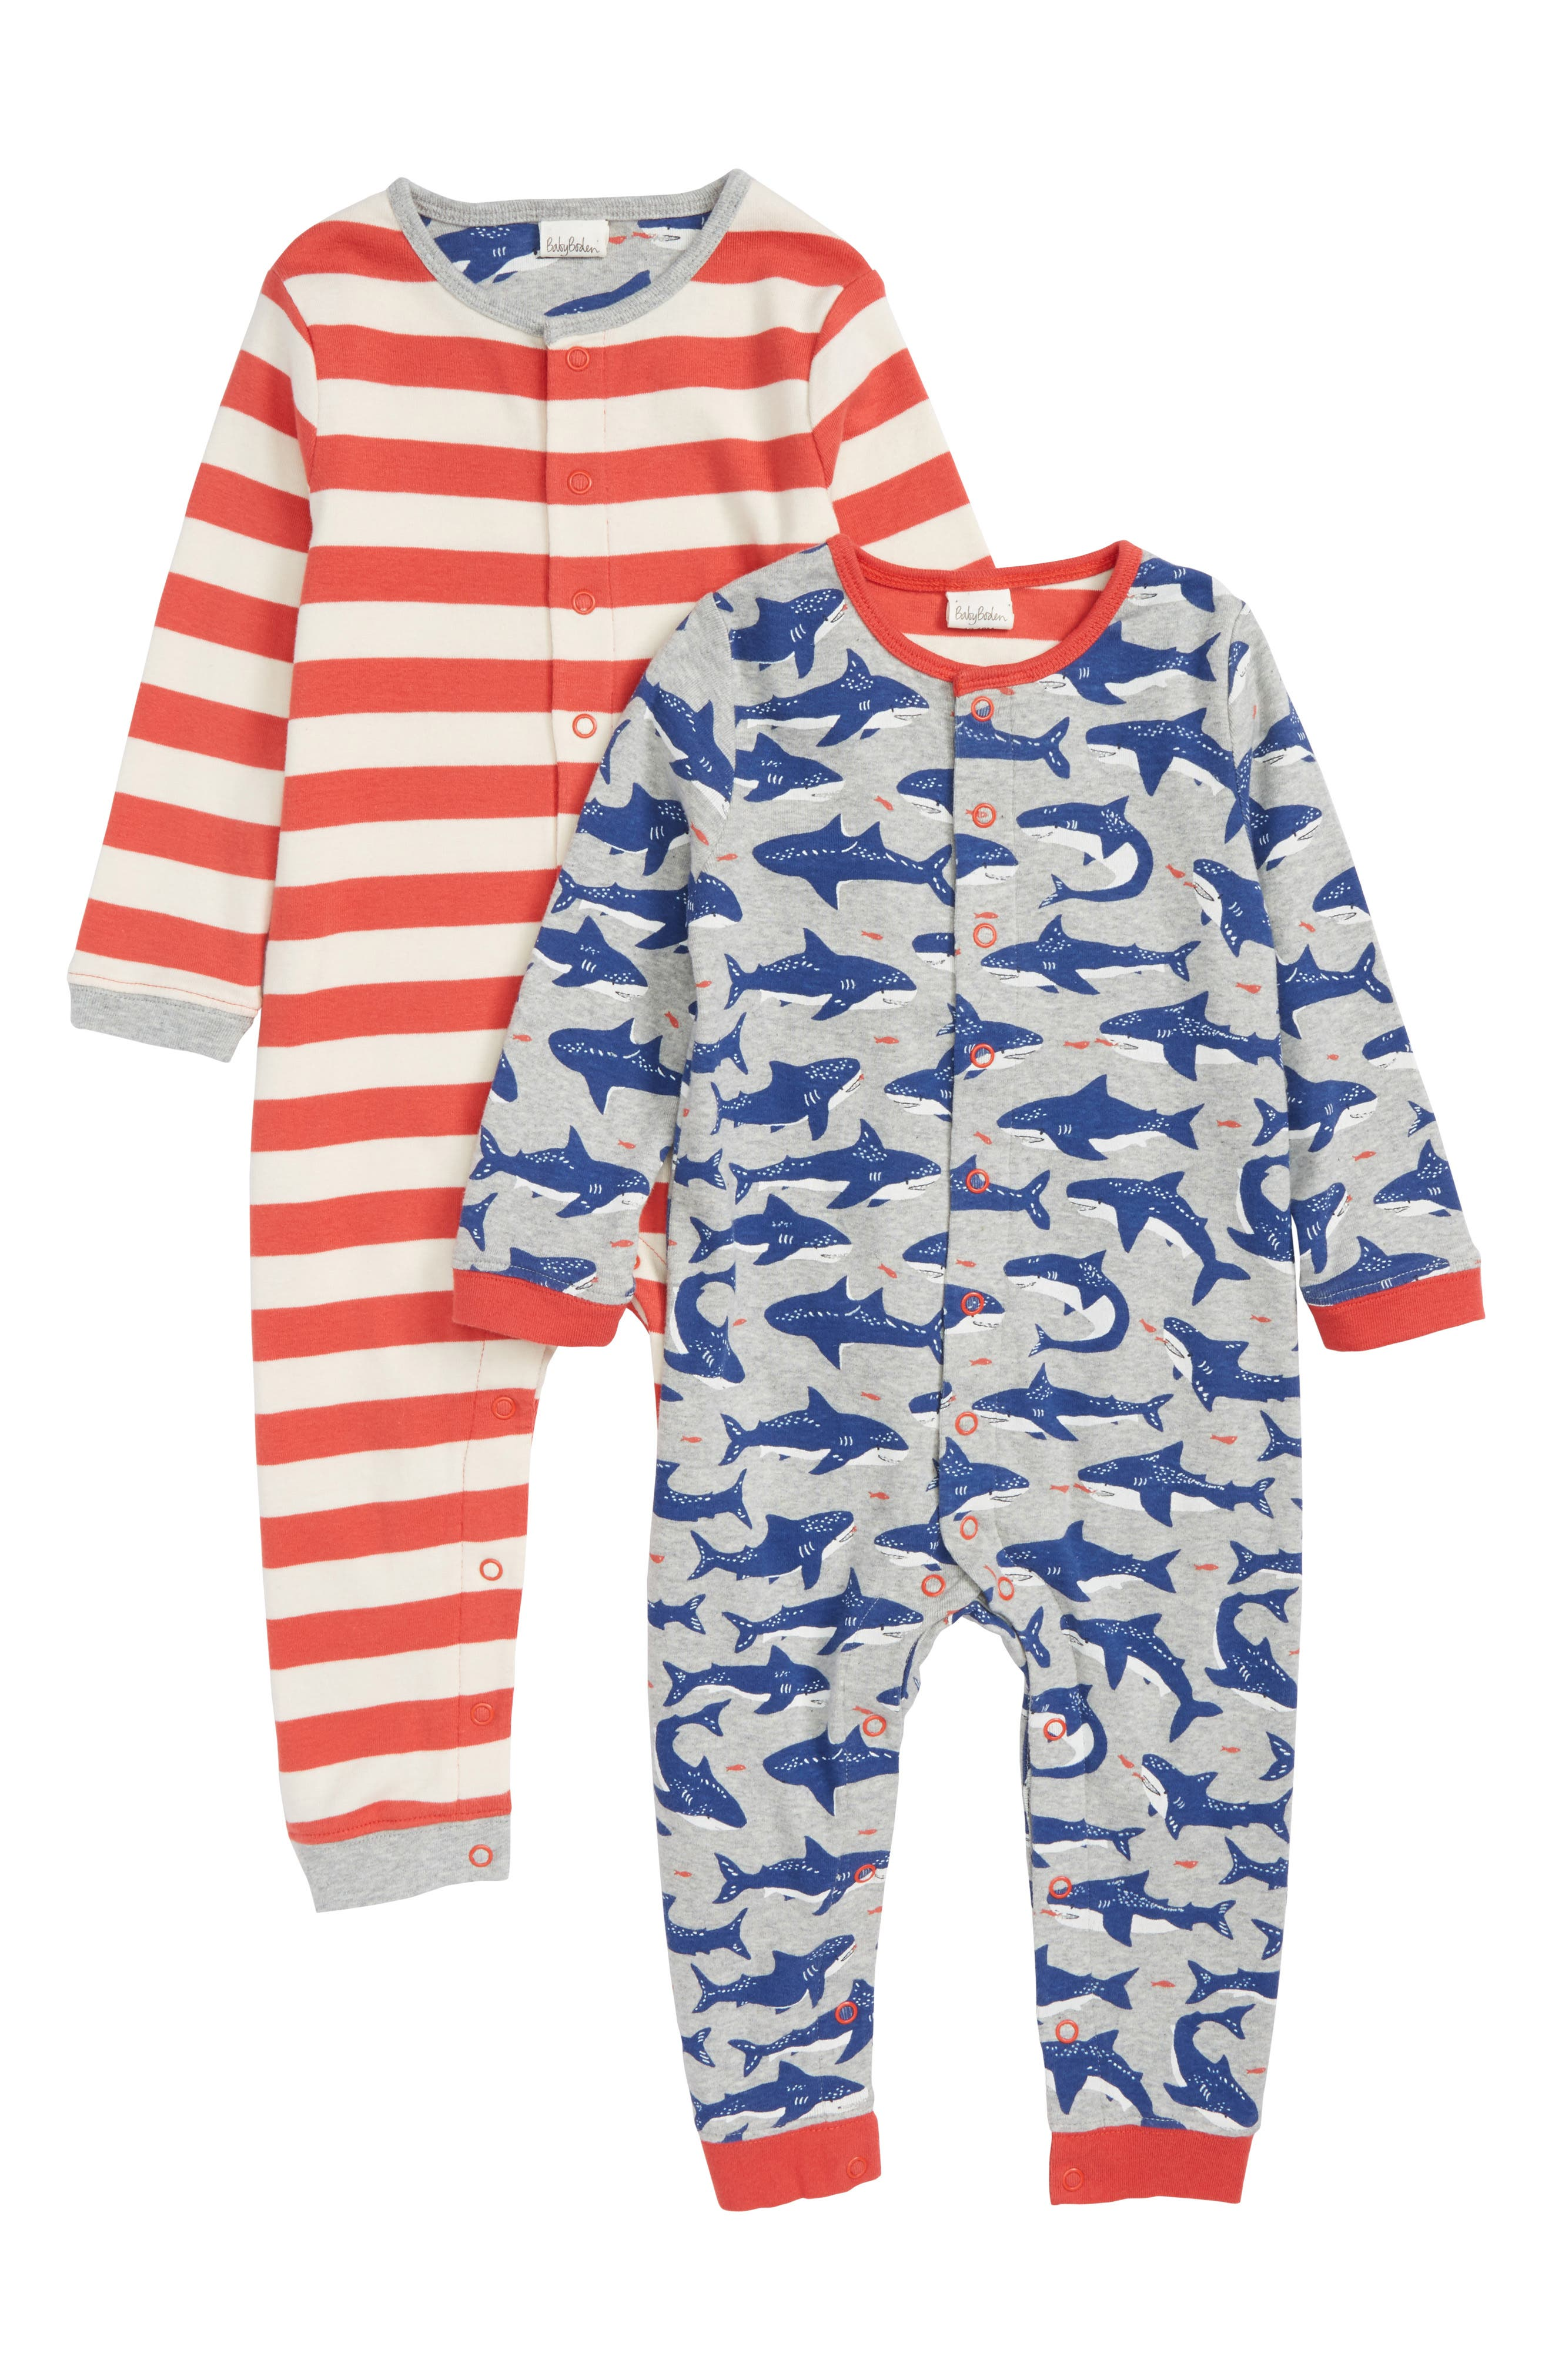 2-Pack Rompers,                             Main thumbnail 1, color,                             Grey Marl Sharks